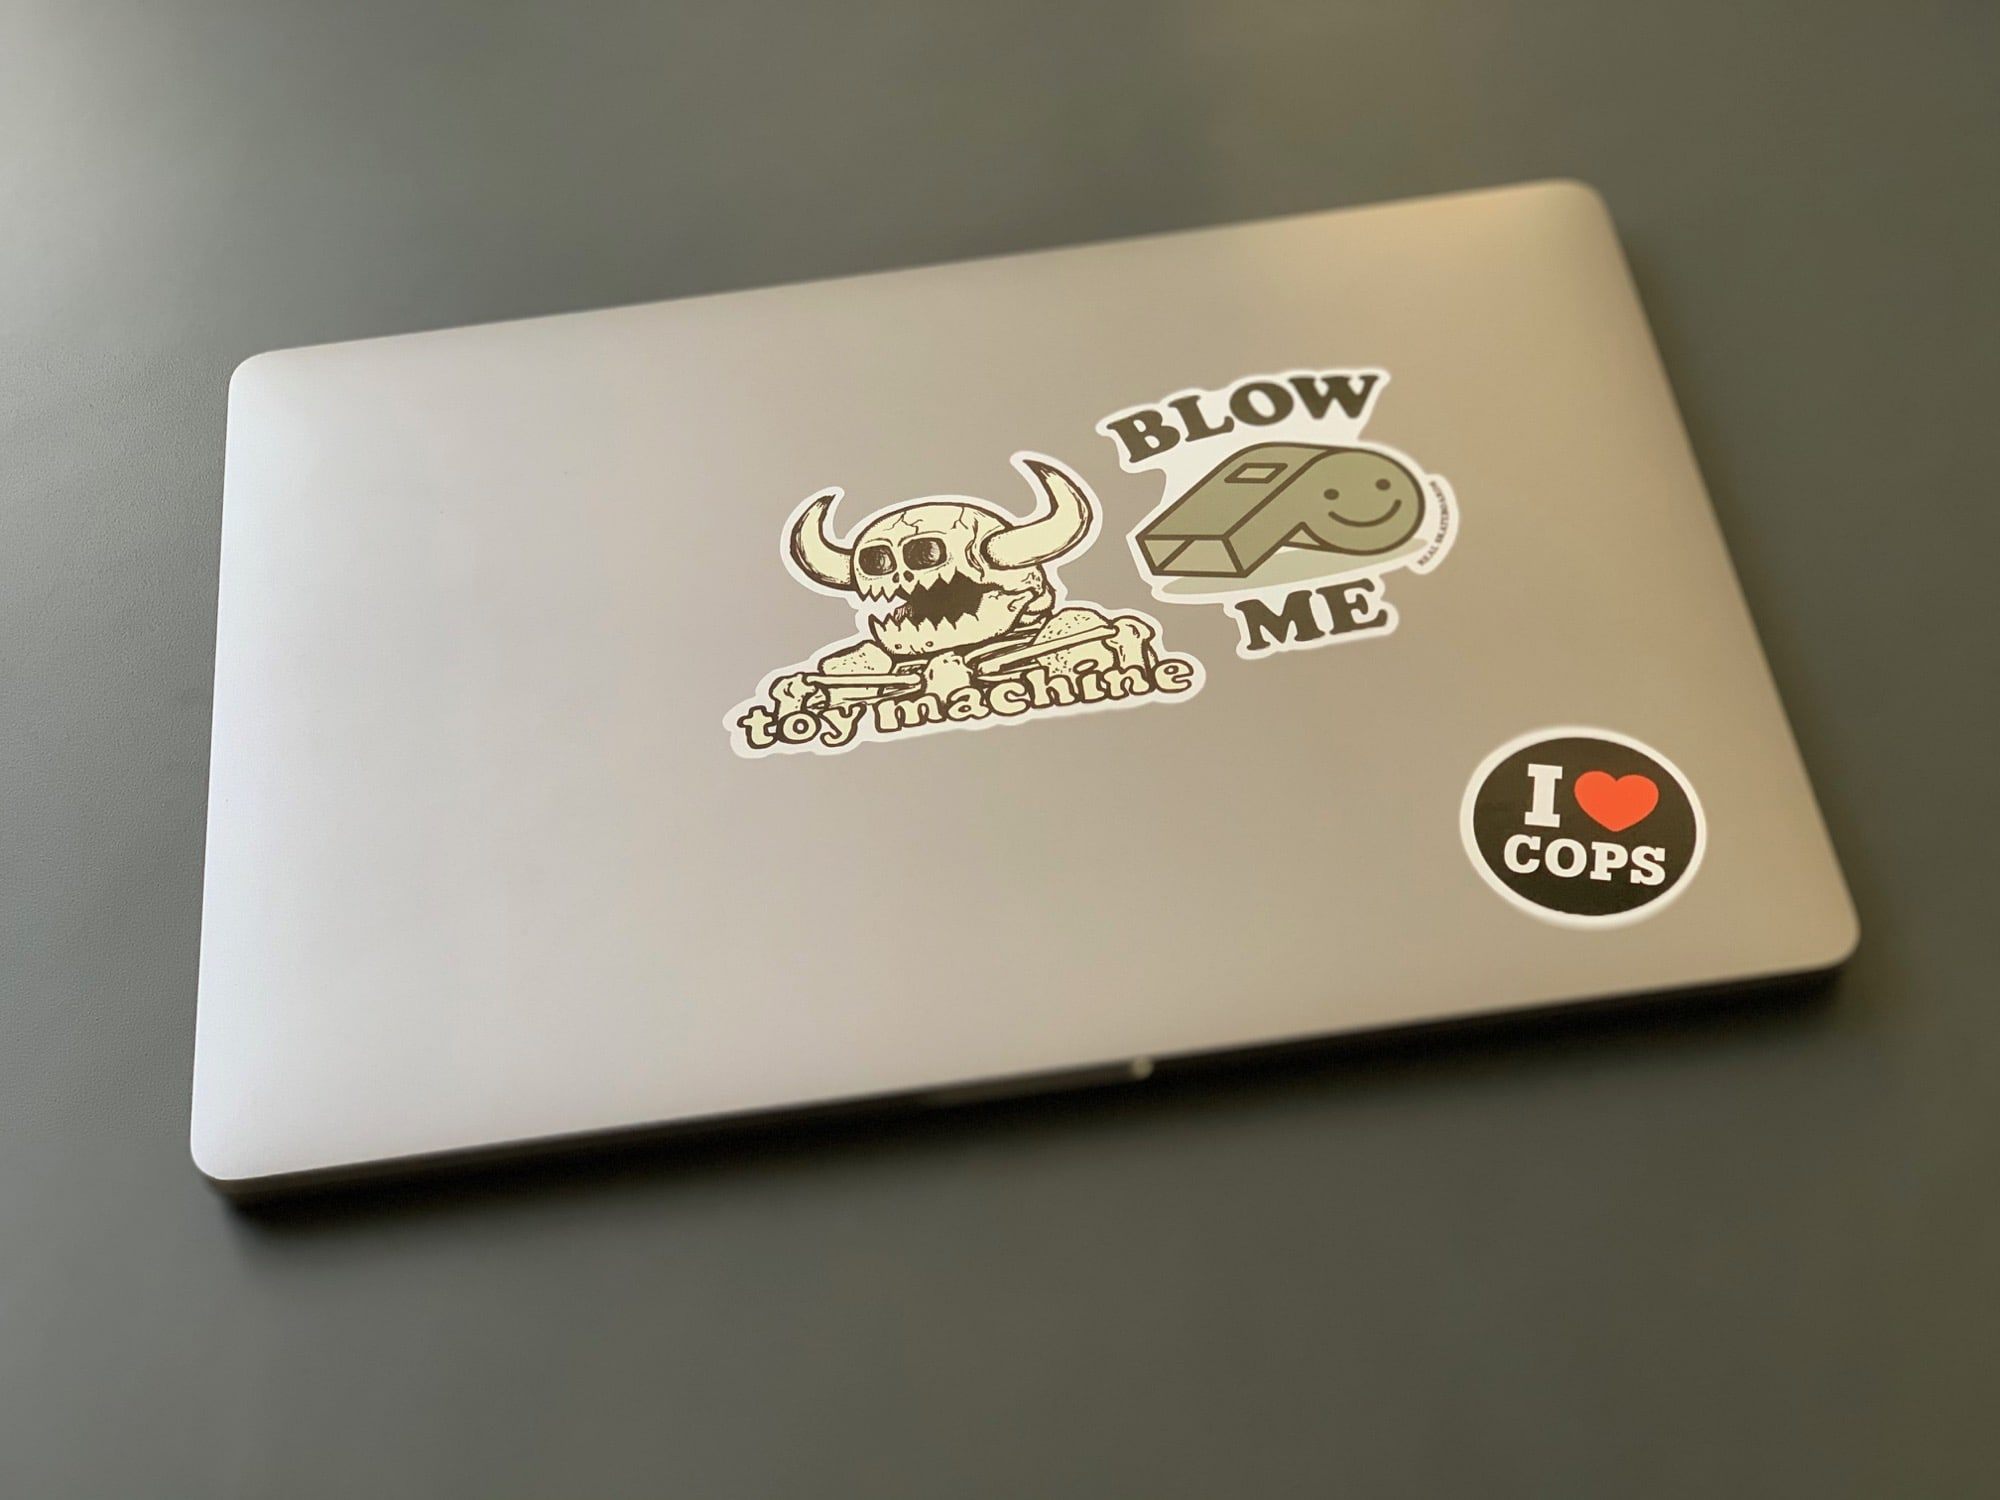 The hardest part of returning a MacBook is removing the stickers.